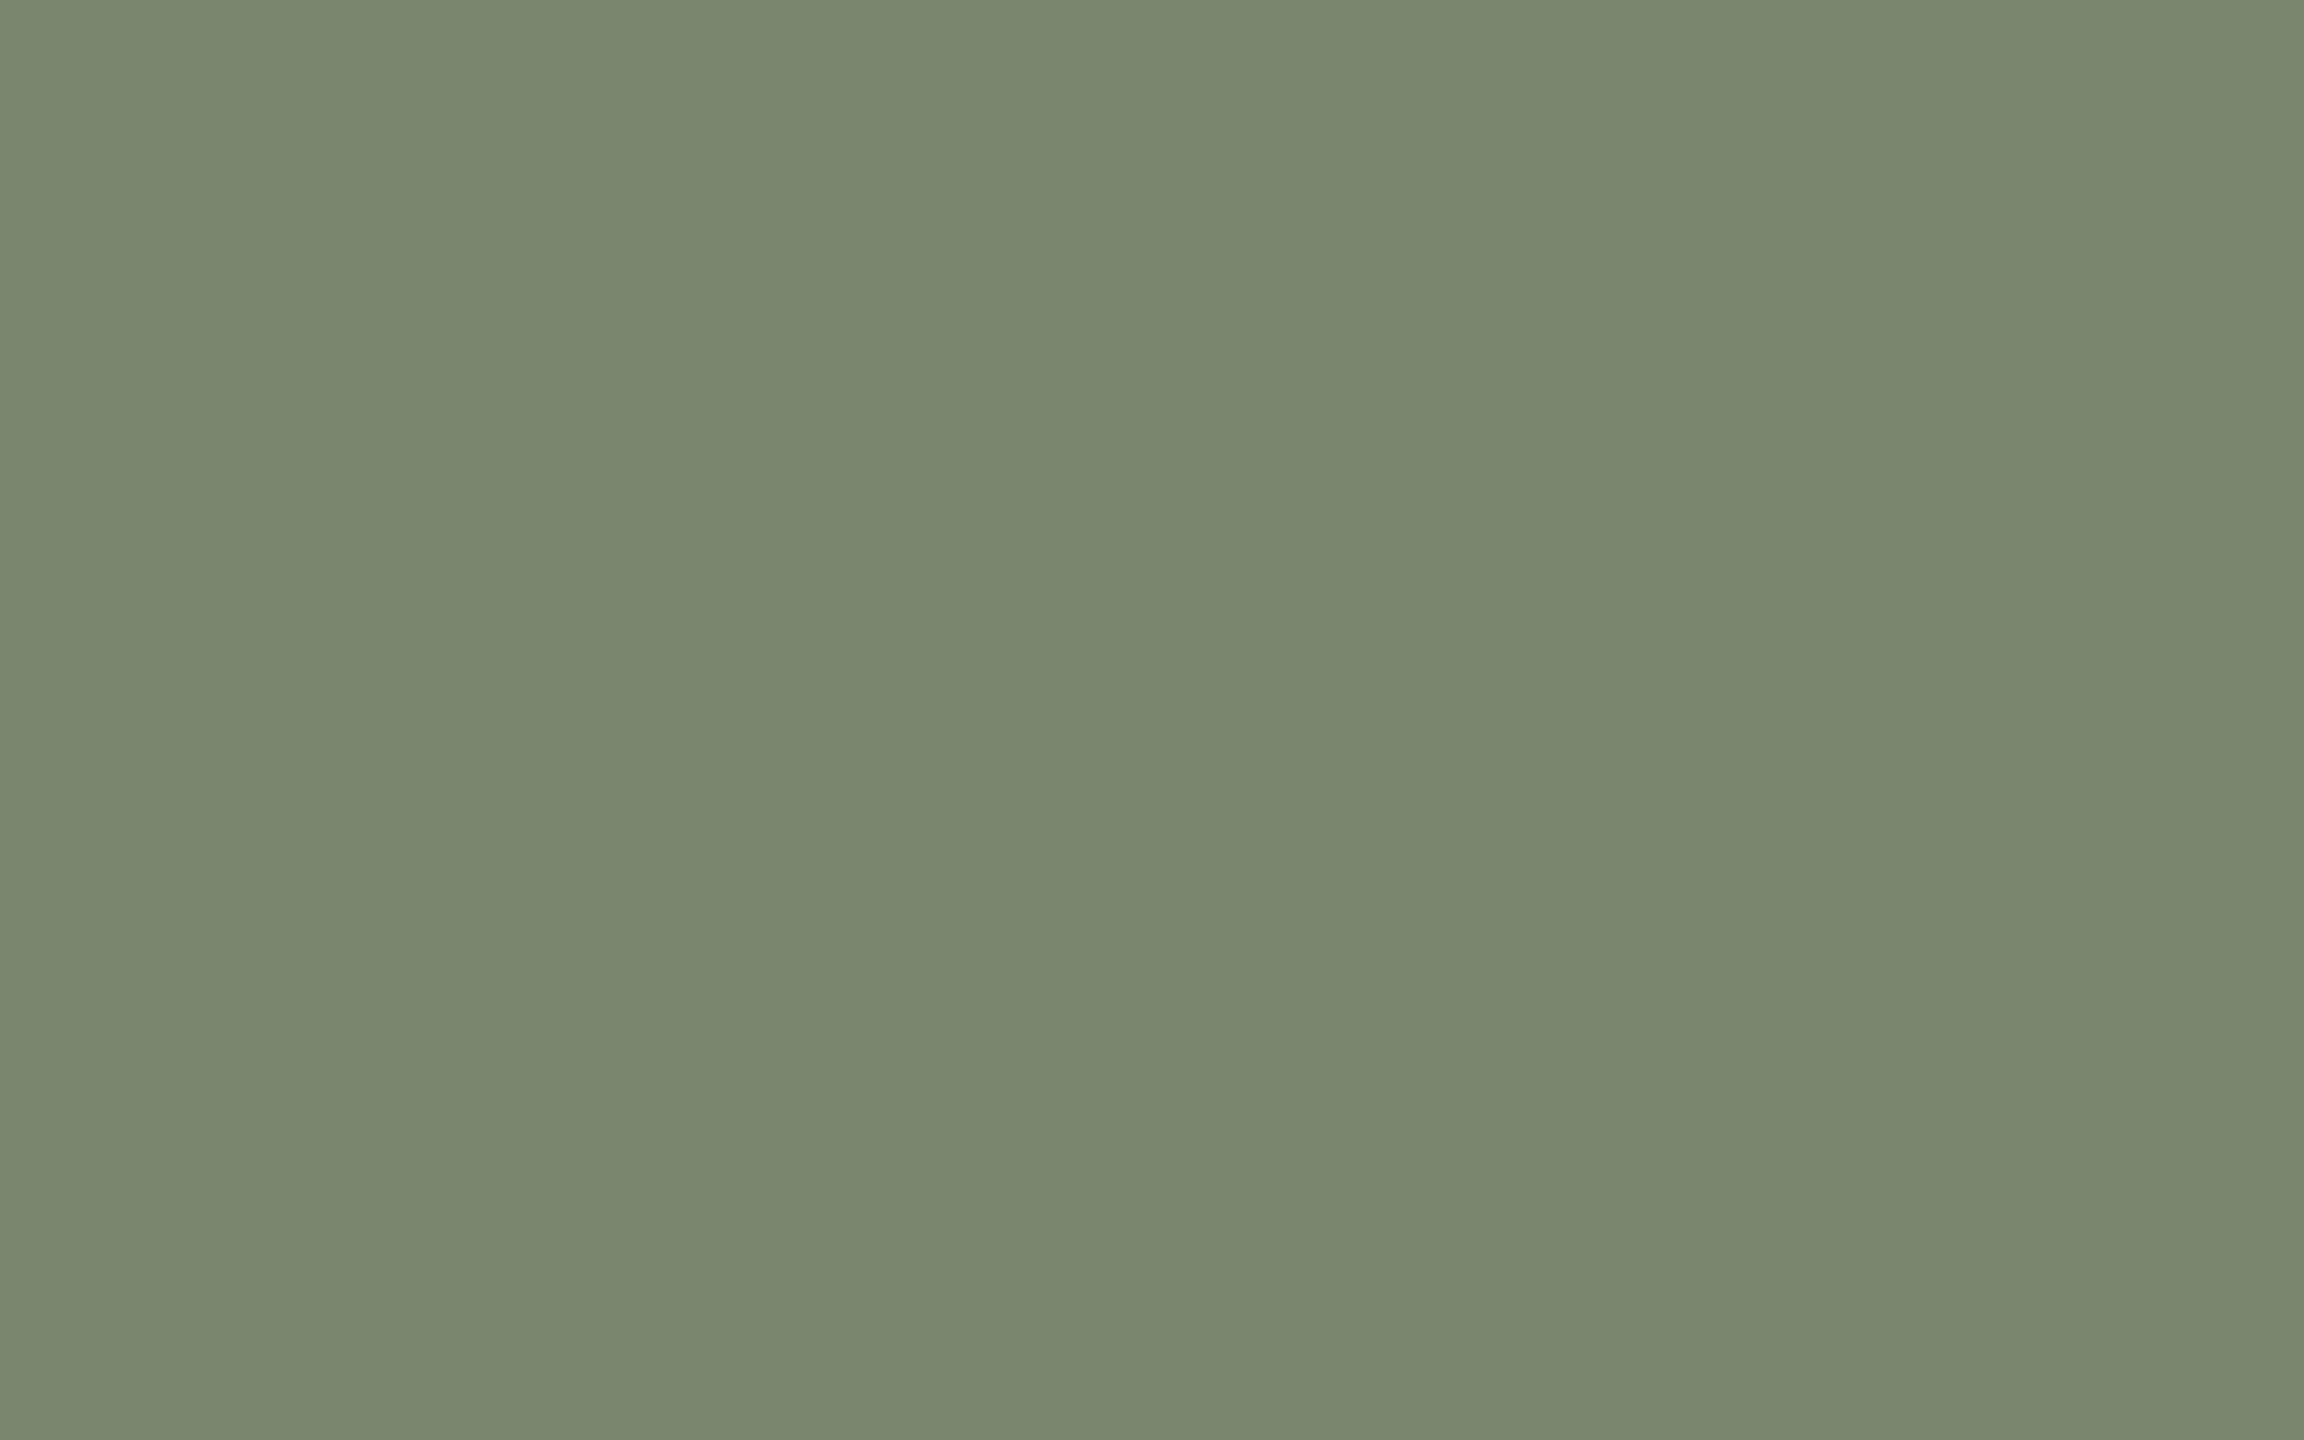 2304x1440 Camouflage Green Solid Color Background